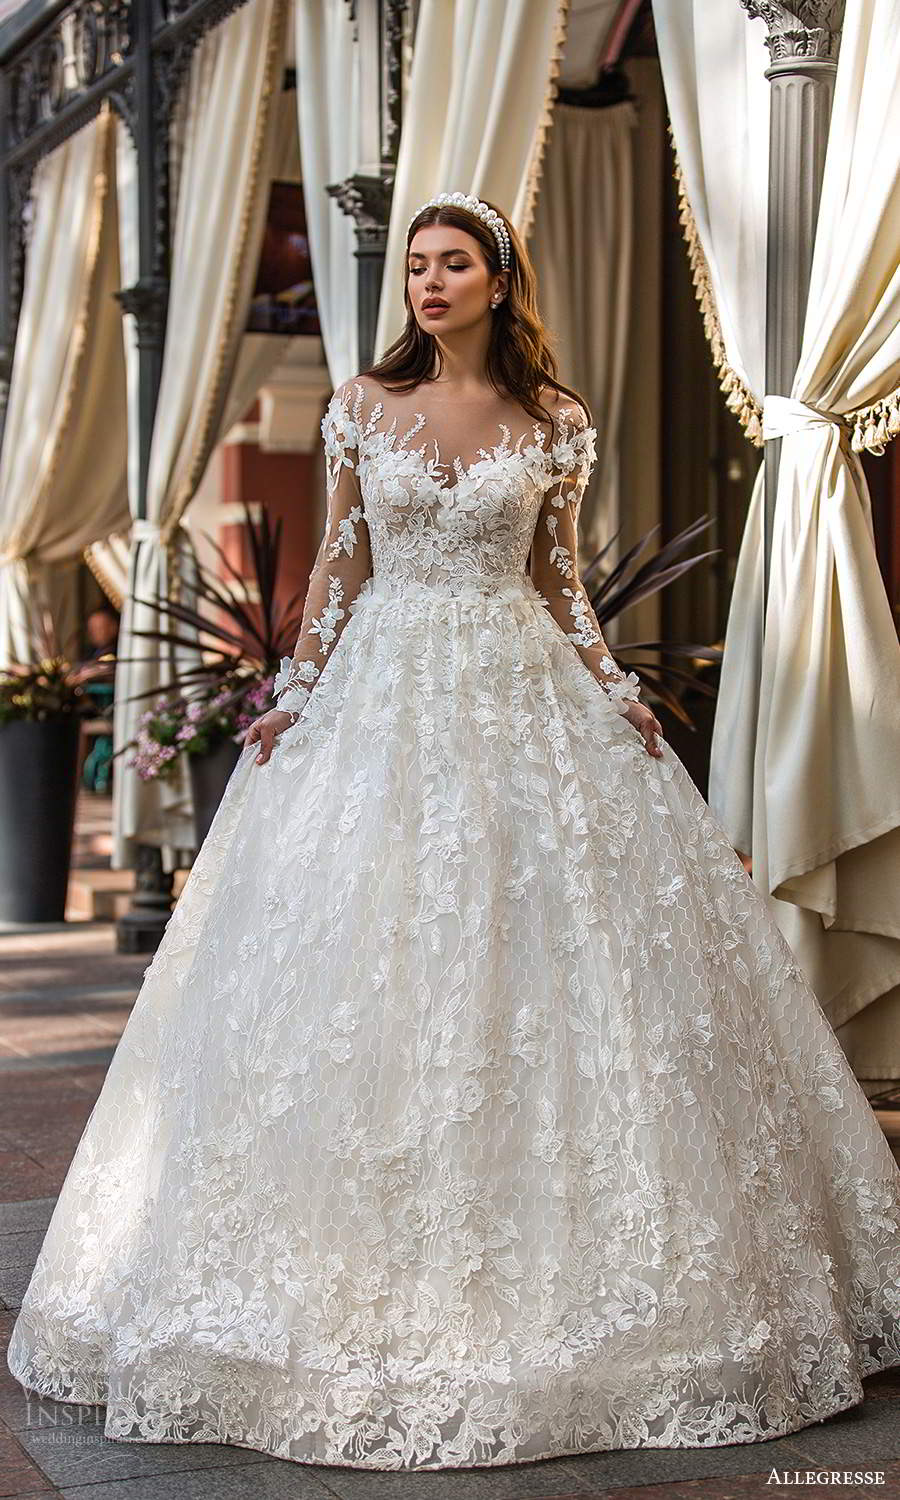 allegresse 2021 bridal illusion long sleeves off shoulder sweetheart neckline fully embellished a line ball gown wedding dress chapel train (5) mv